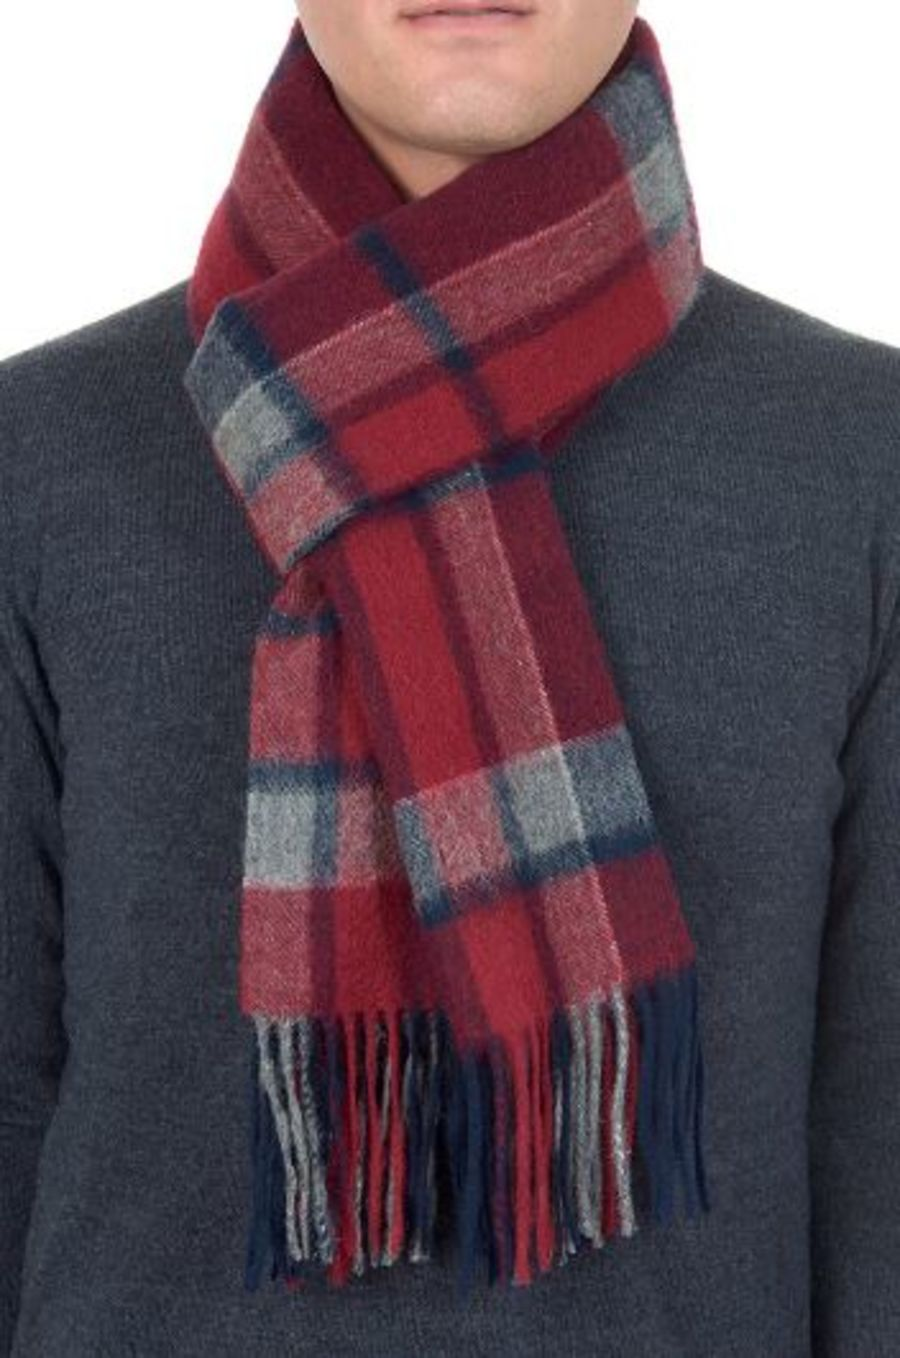 Classic Gents Style 100% Wool Scarf - PBY18W